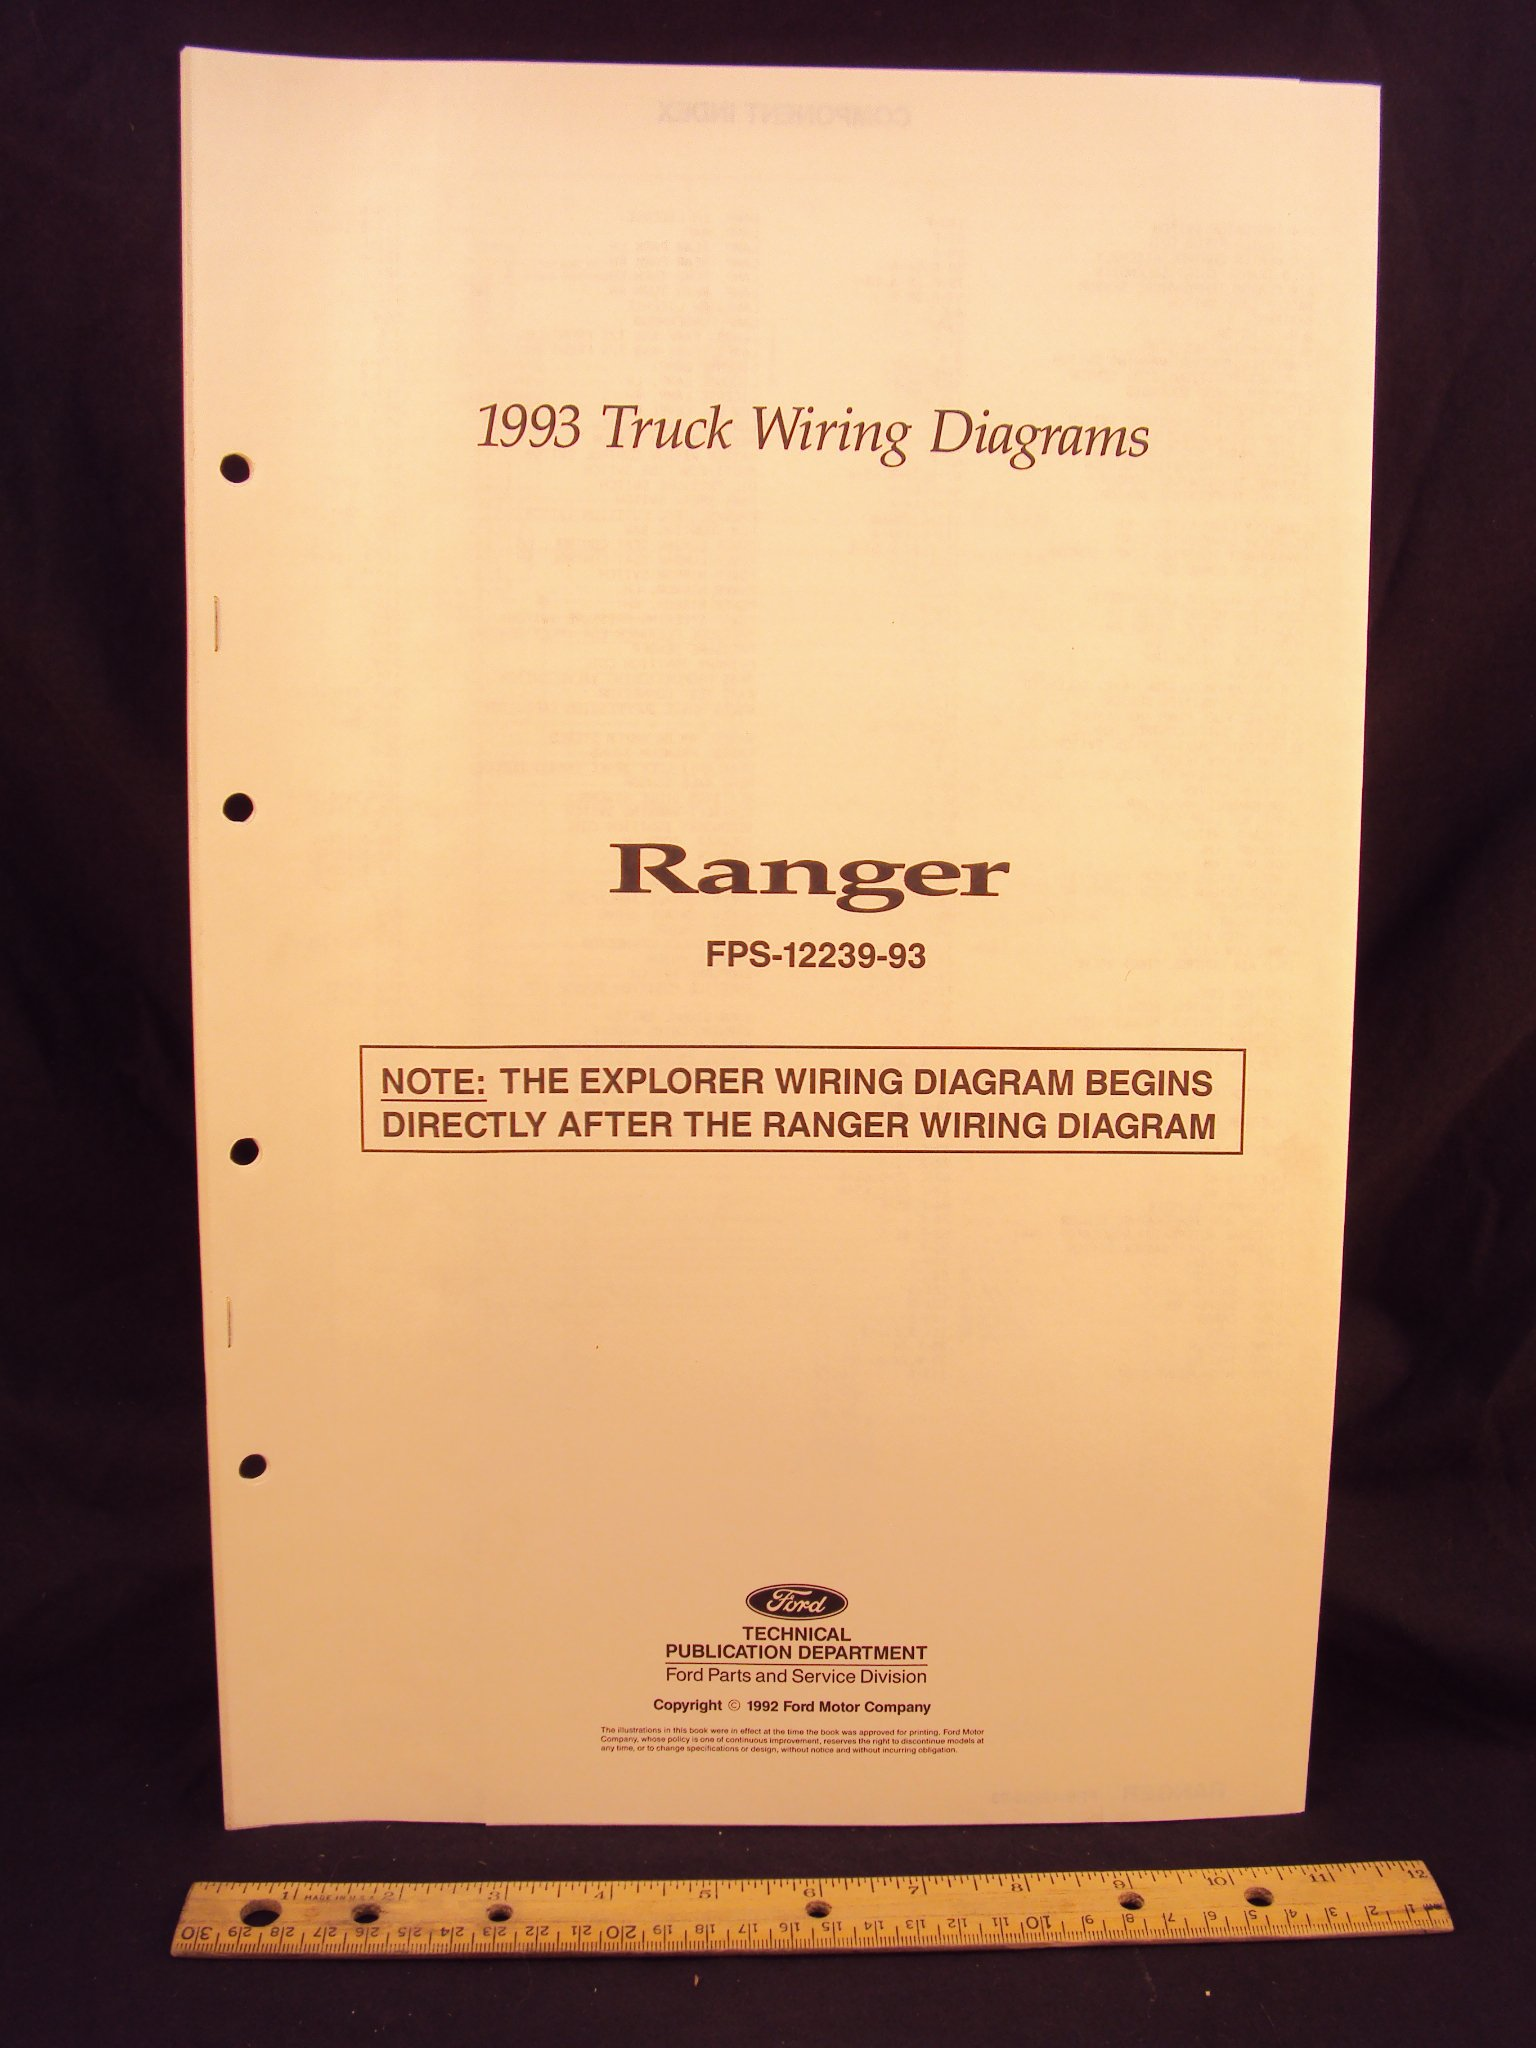 1993 ford ranger truck electrical wiring diagrams / schematics loose leaf –  january 1, 1992